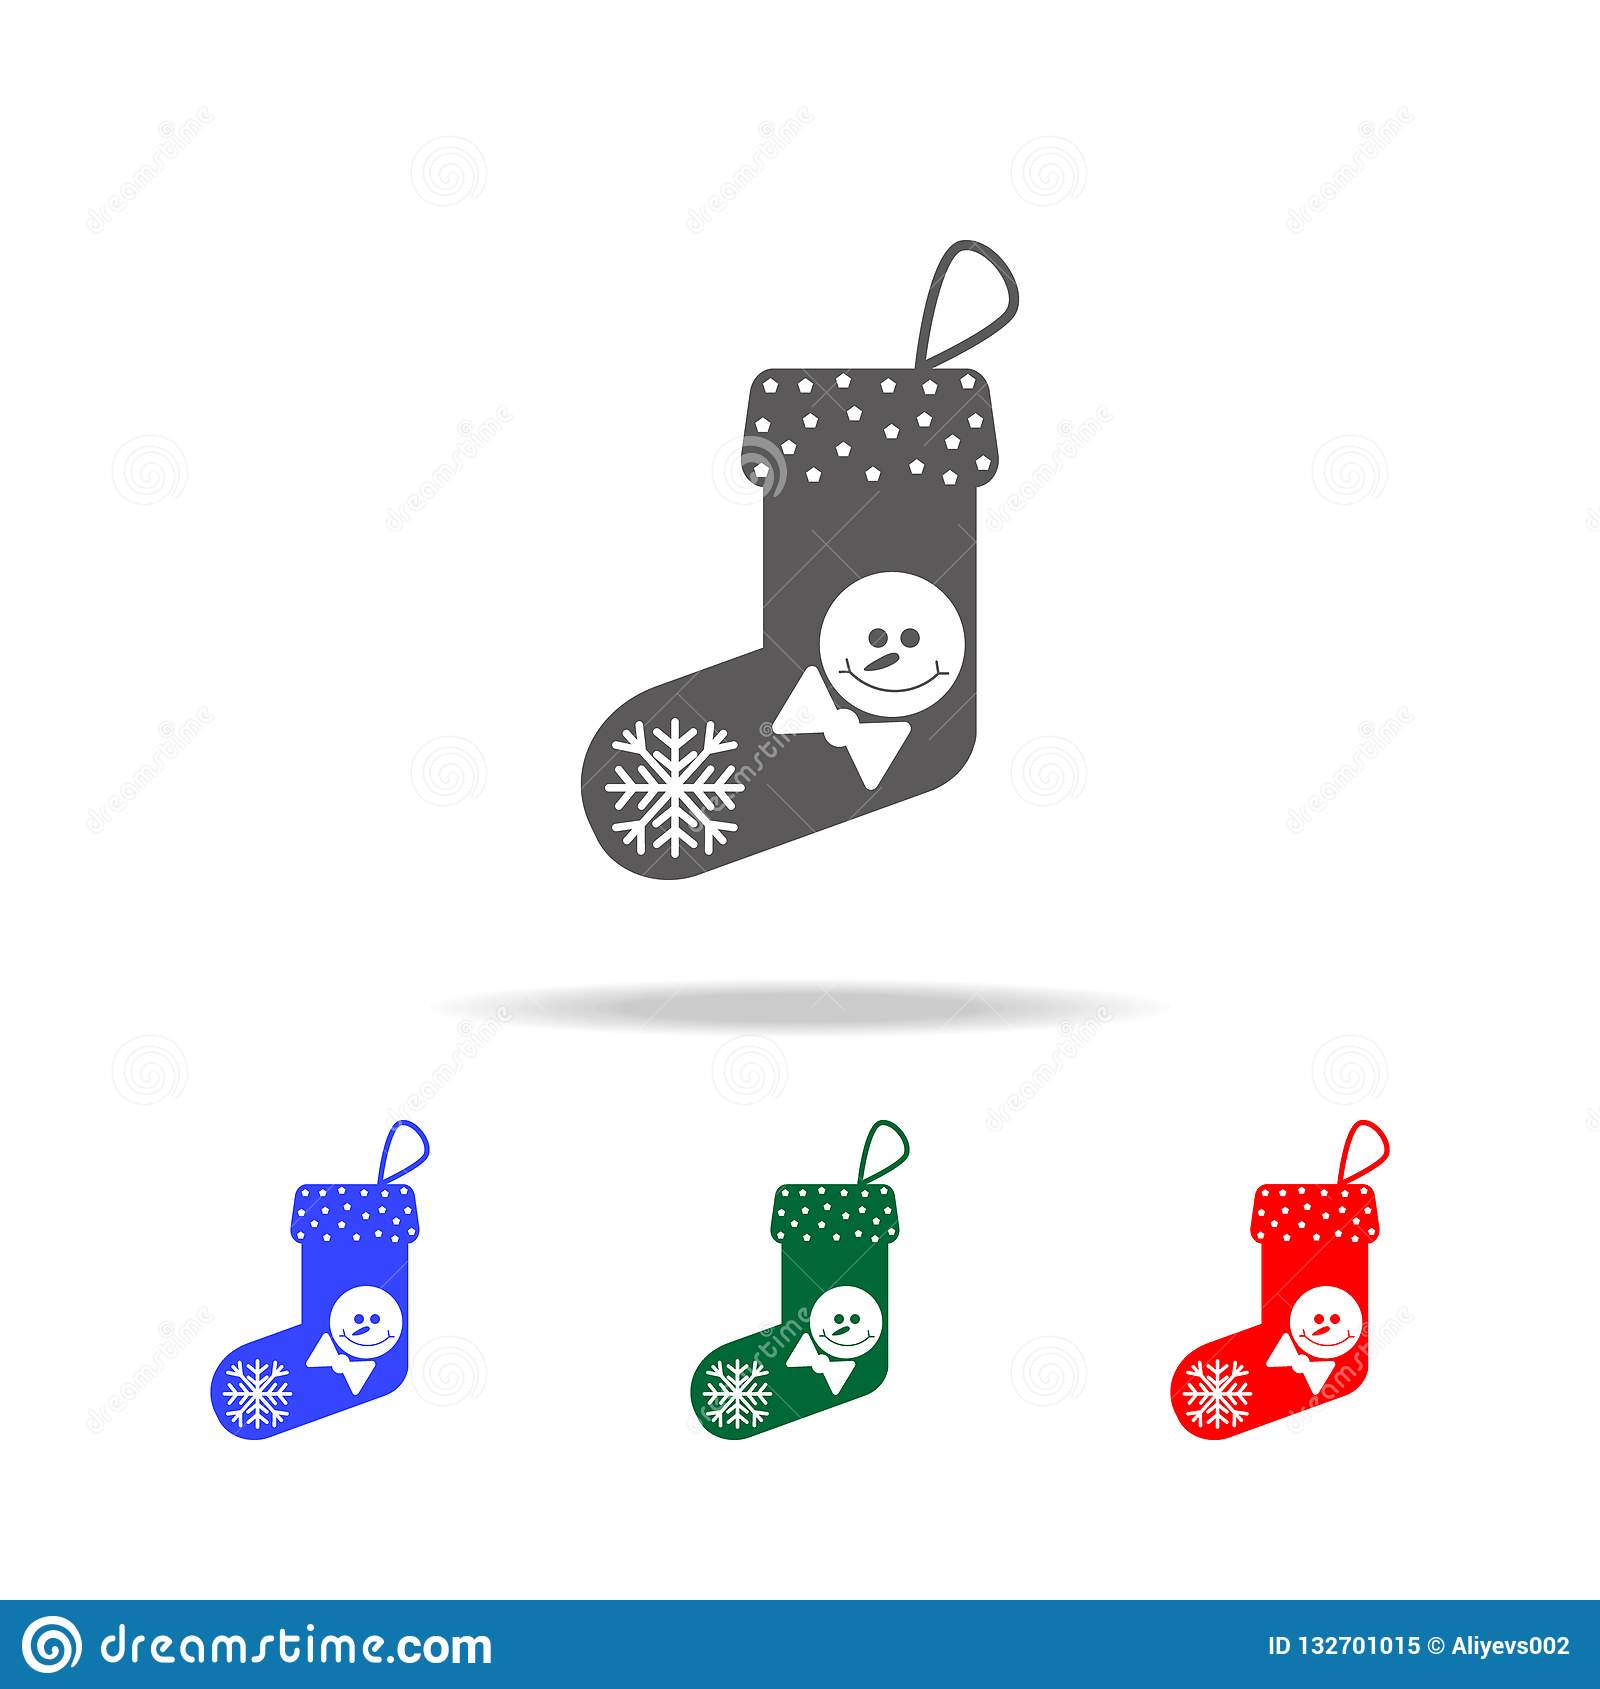 Christmas Holidays Icon.Christmas Socks Icon Elements Of Christmas Holidays In